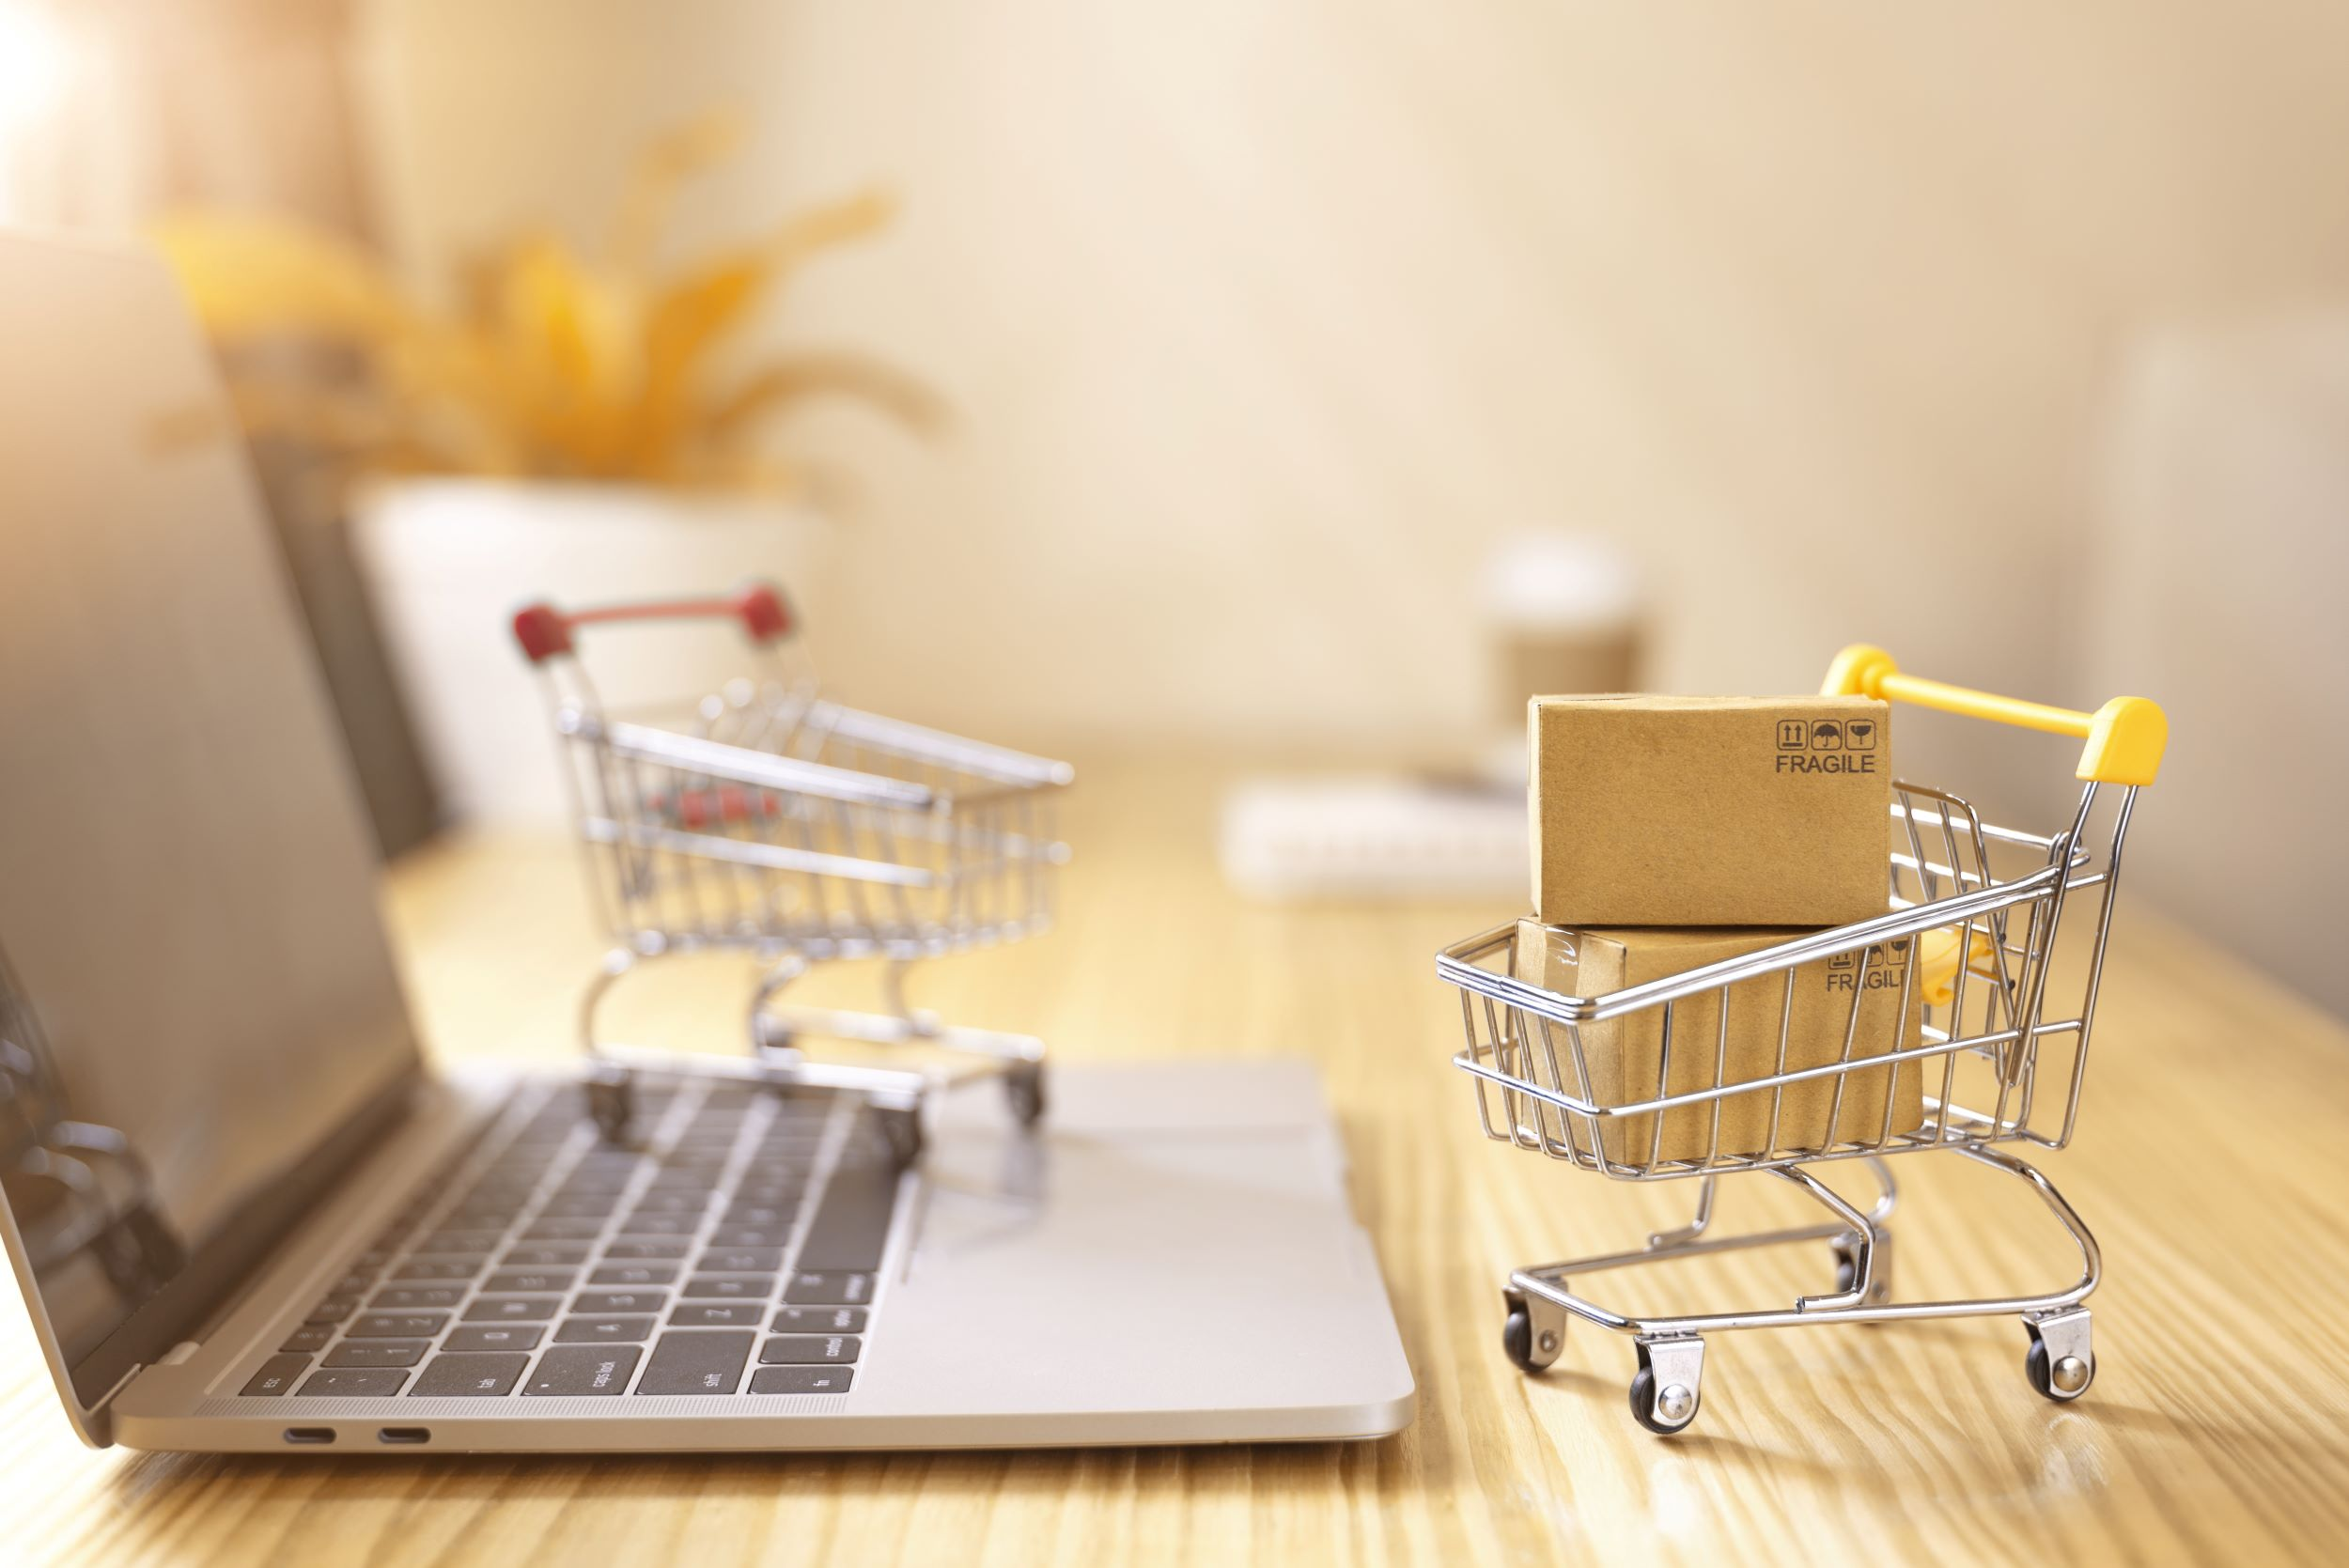 Strategies to Reduce Shopping Cart Abandonment